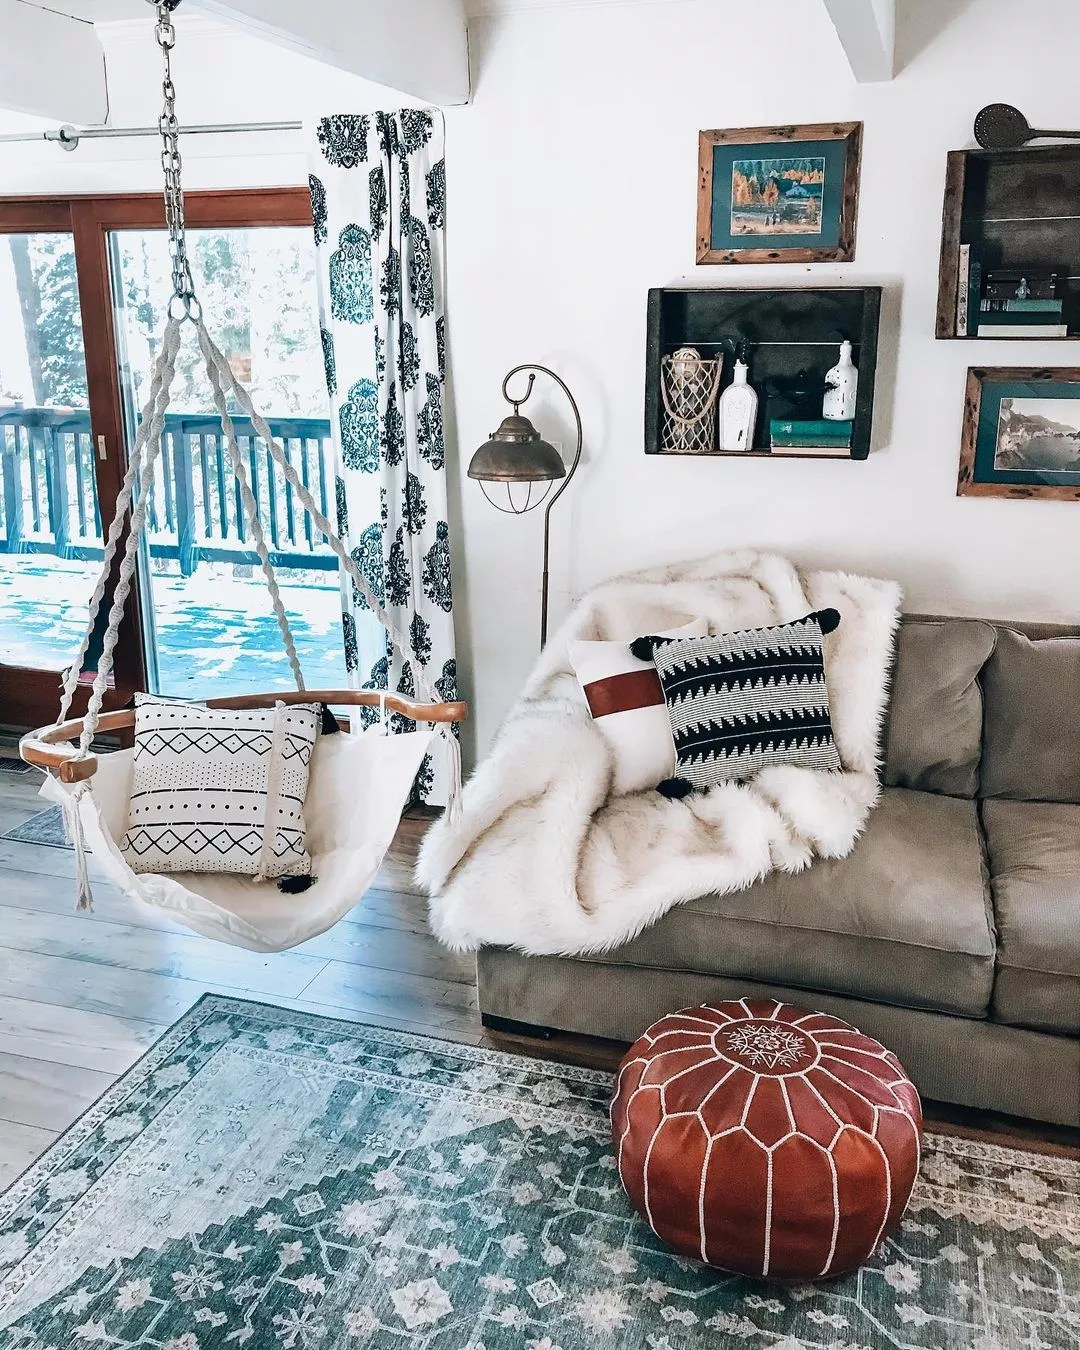 Living room with cool touches, including a dark teal rug, teal and navy-patterned curtains, and soft grey sofa, beside a hanging chair made of wood, white canvas material. Photo by Instagram user @shoppingwith.hannah.